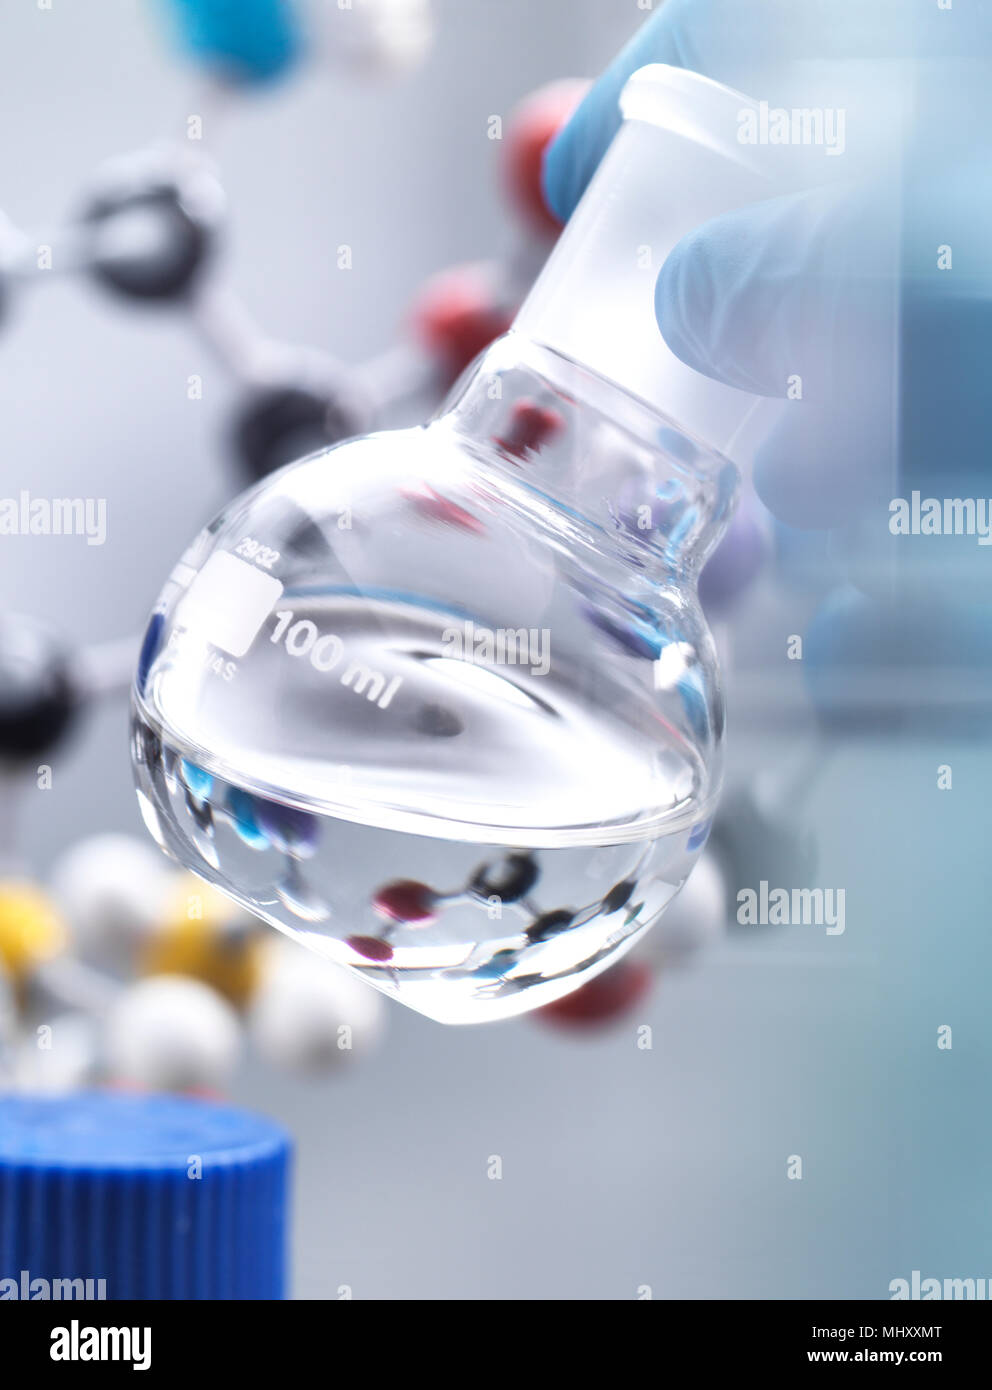 Scientist preparing chemical formula in a laboratory flask during an experiment, molecular model in the background - Stock Image